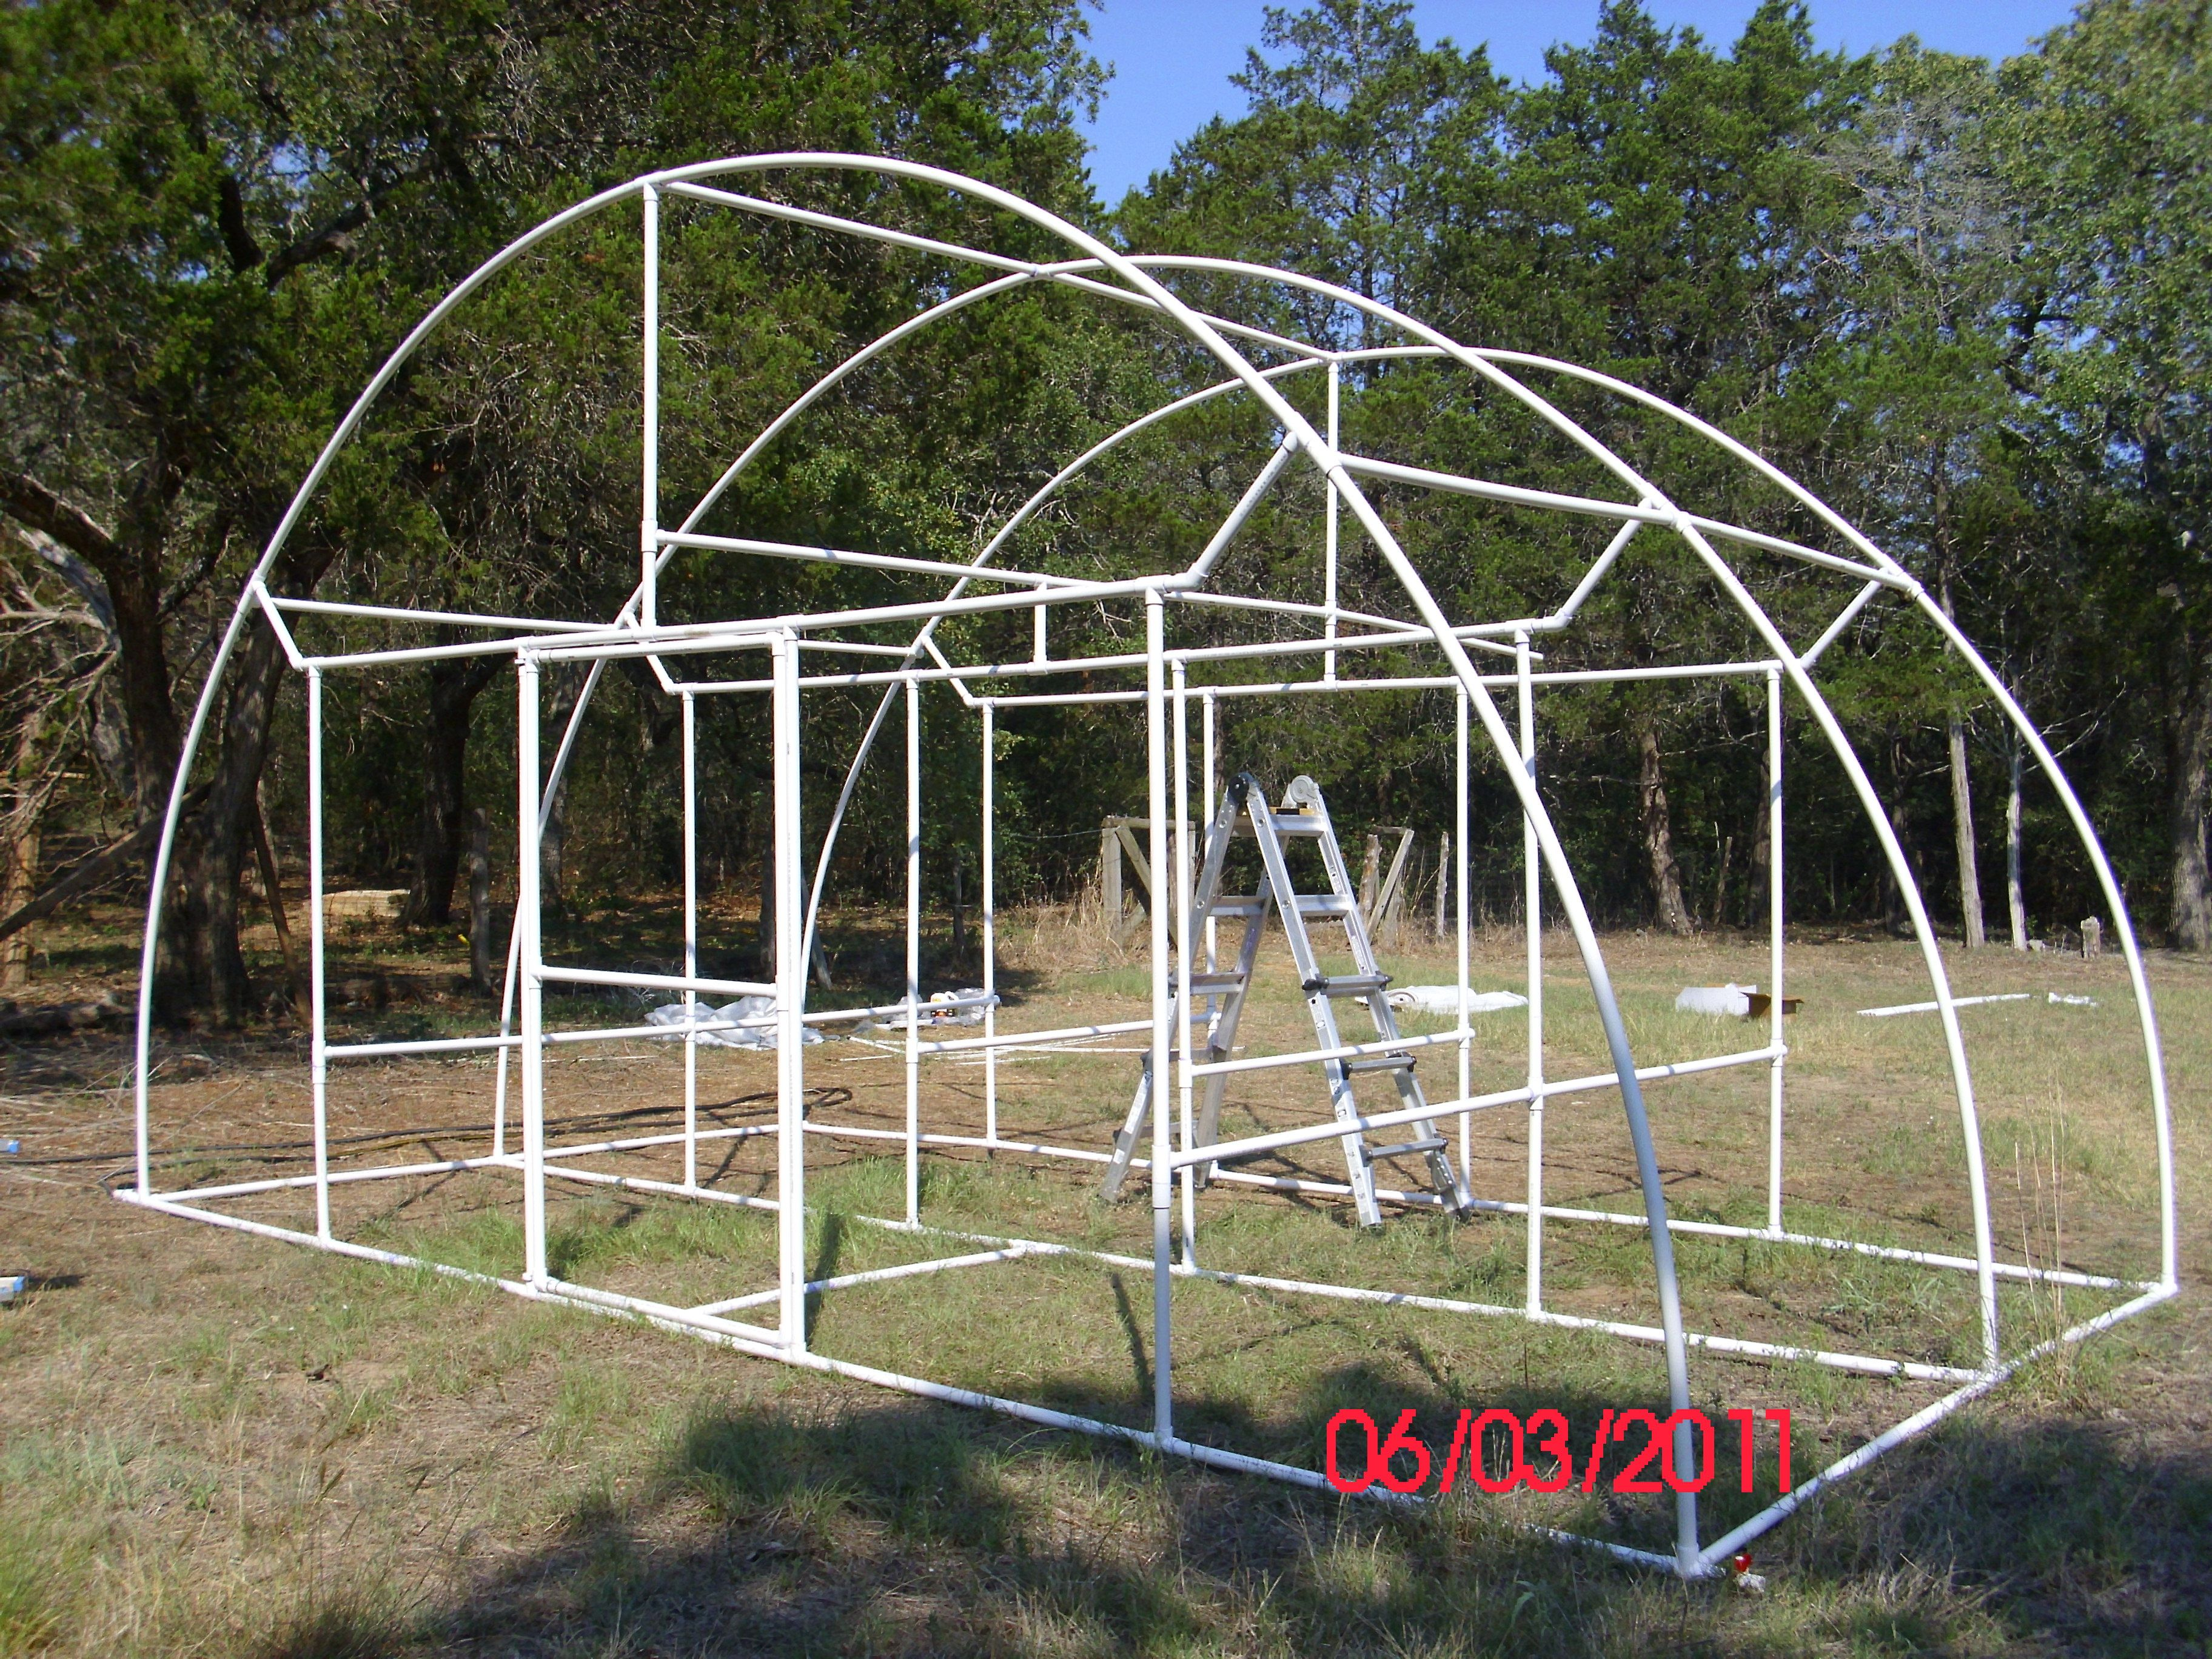 Pictures Of A Quot Build It Yourself Quot Pvc Dome Greenhouse Greenhouse Plans Greenhouse Farming Greenhouse Supplies